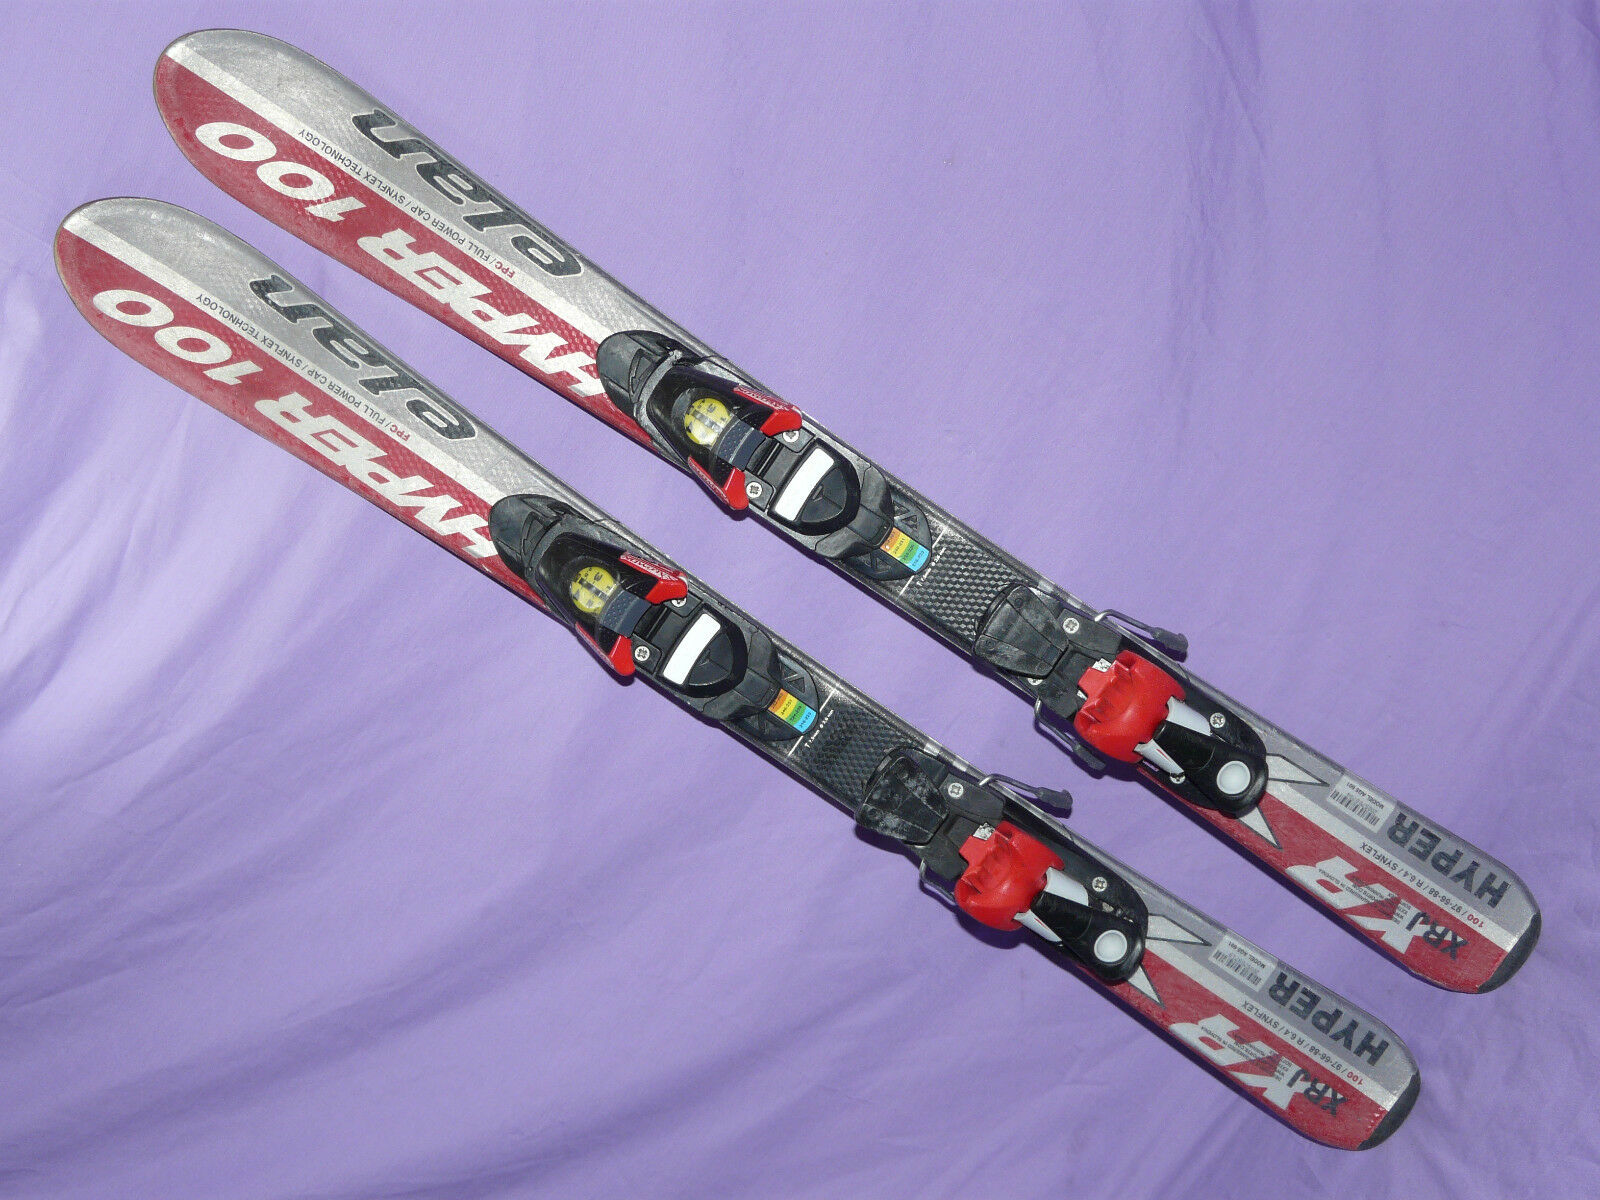 Elan Hyper XRJ  100cm Kids Skis SALOMON 305 Bindings w  adjustable toes & heels ✻  quality first consumers first